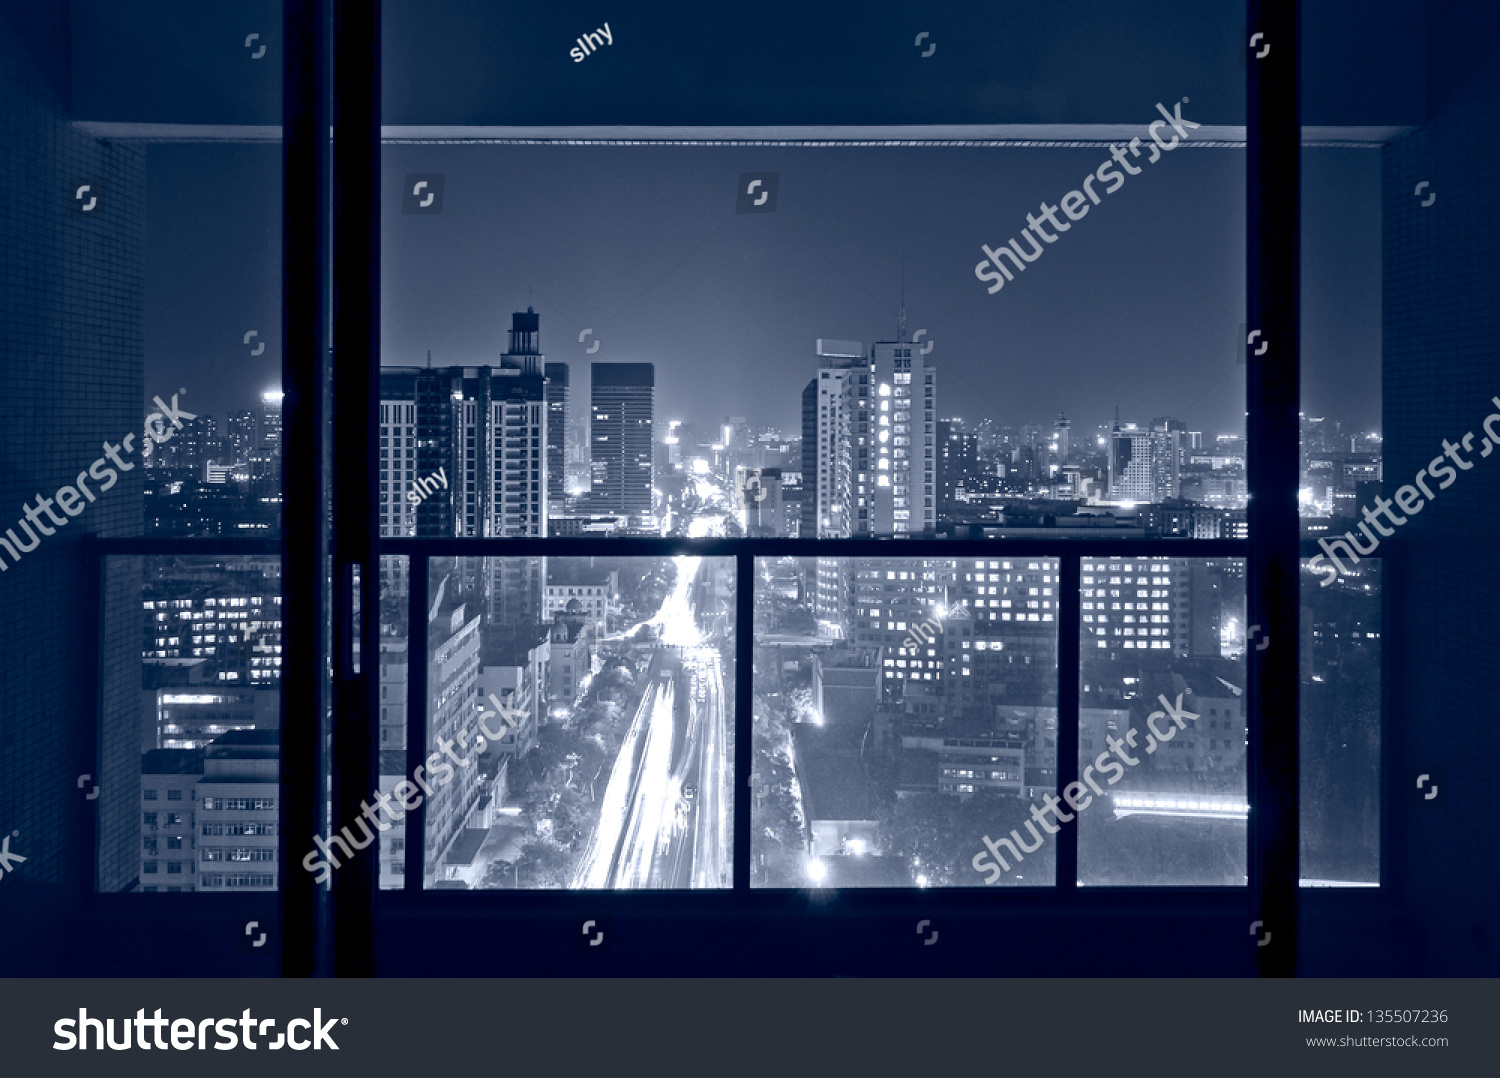 A bird s eye view of the city night view outside the window